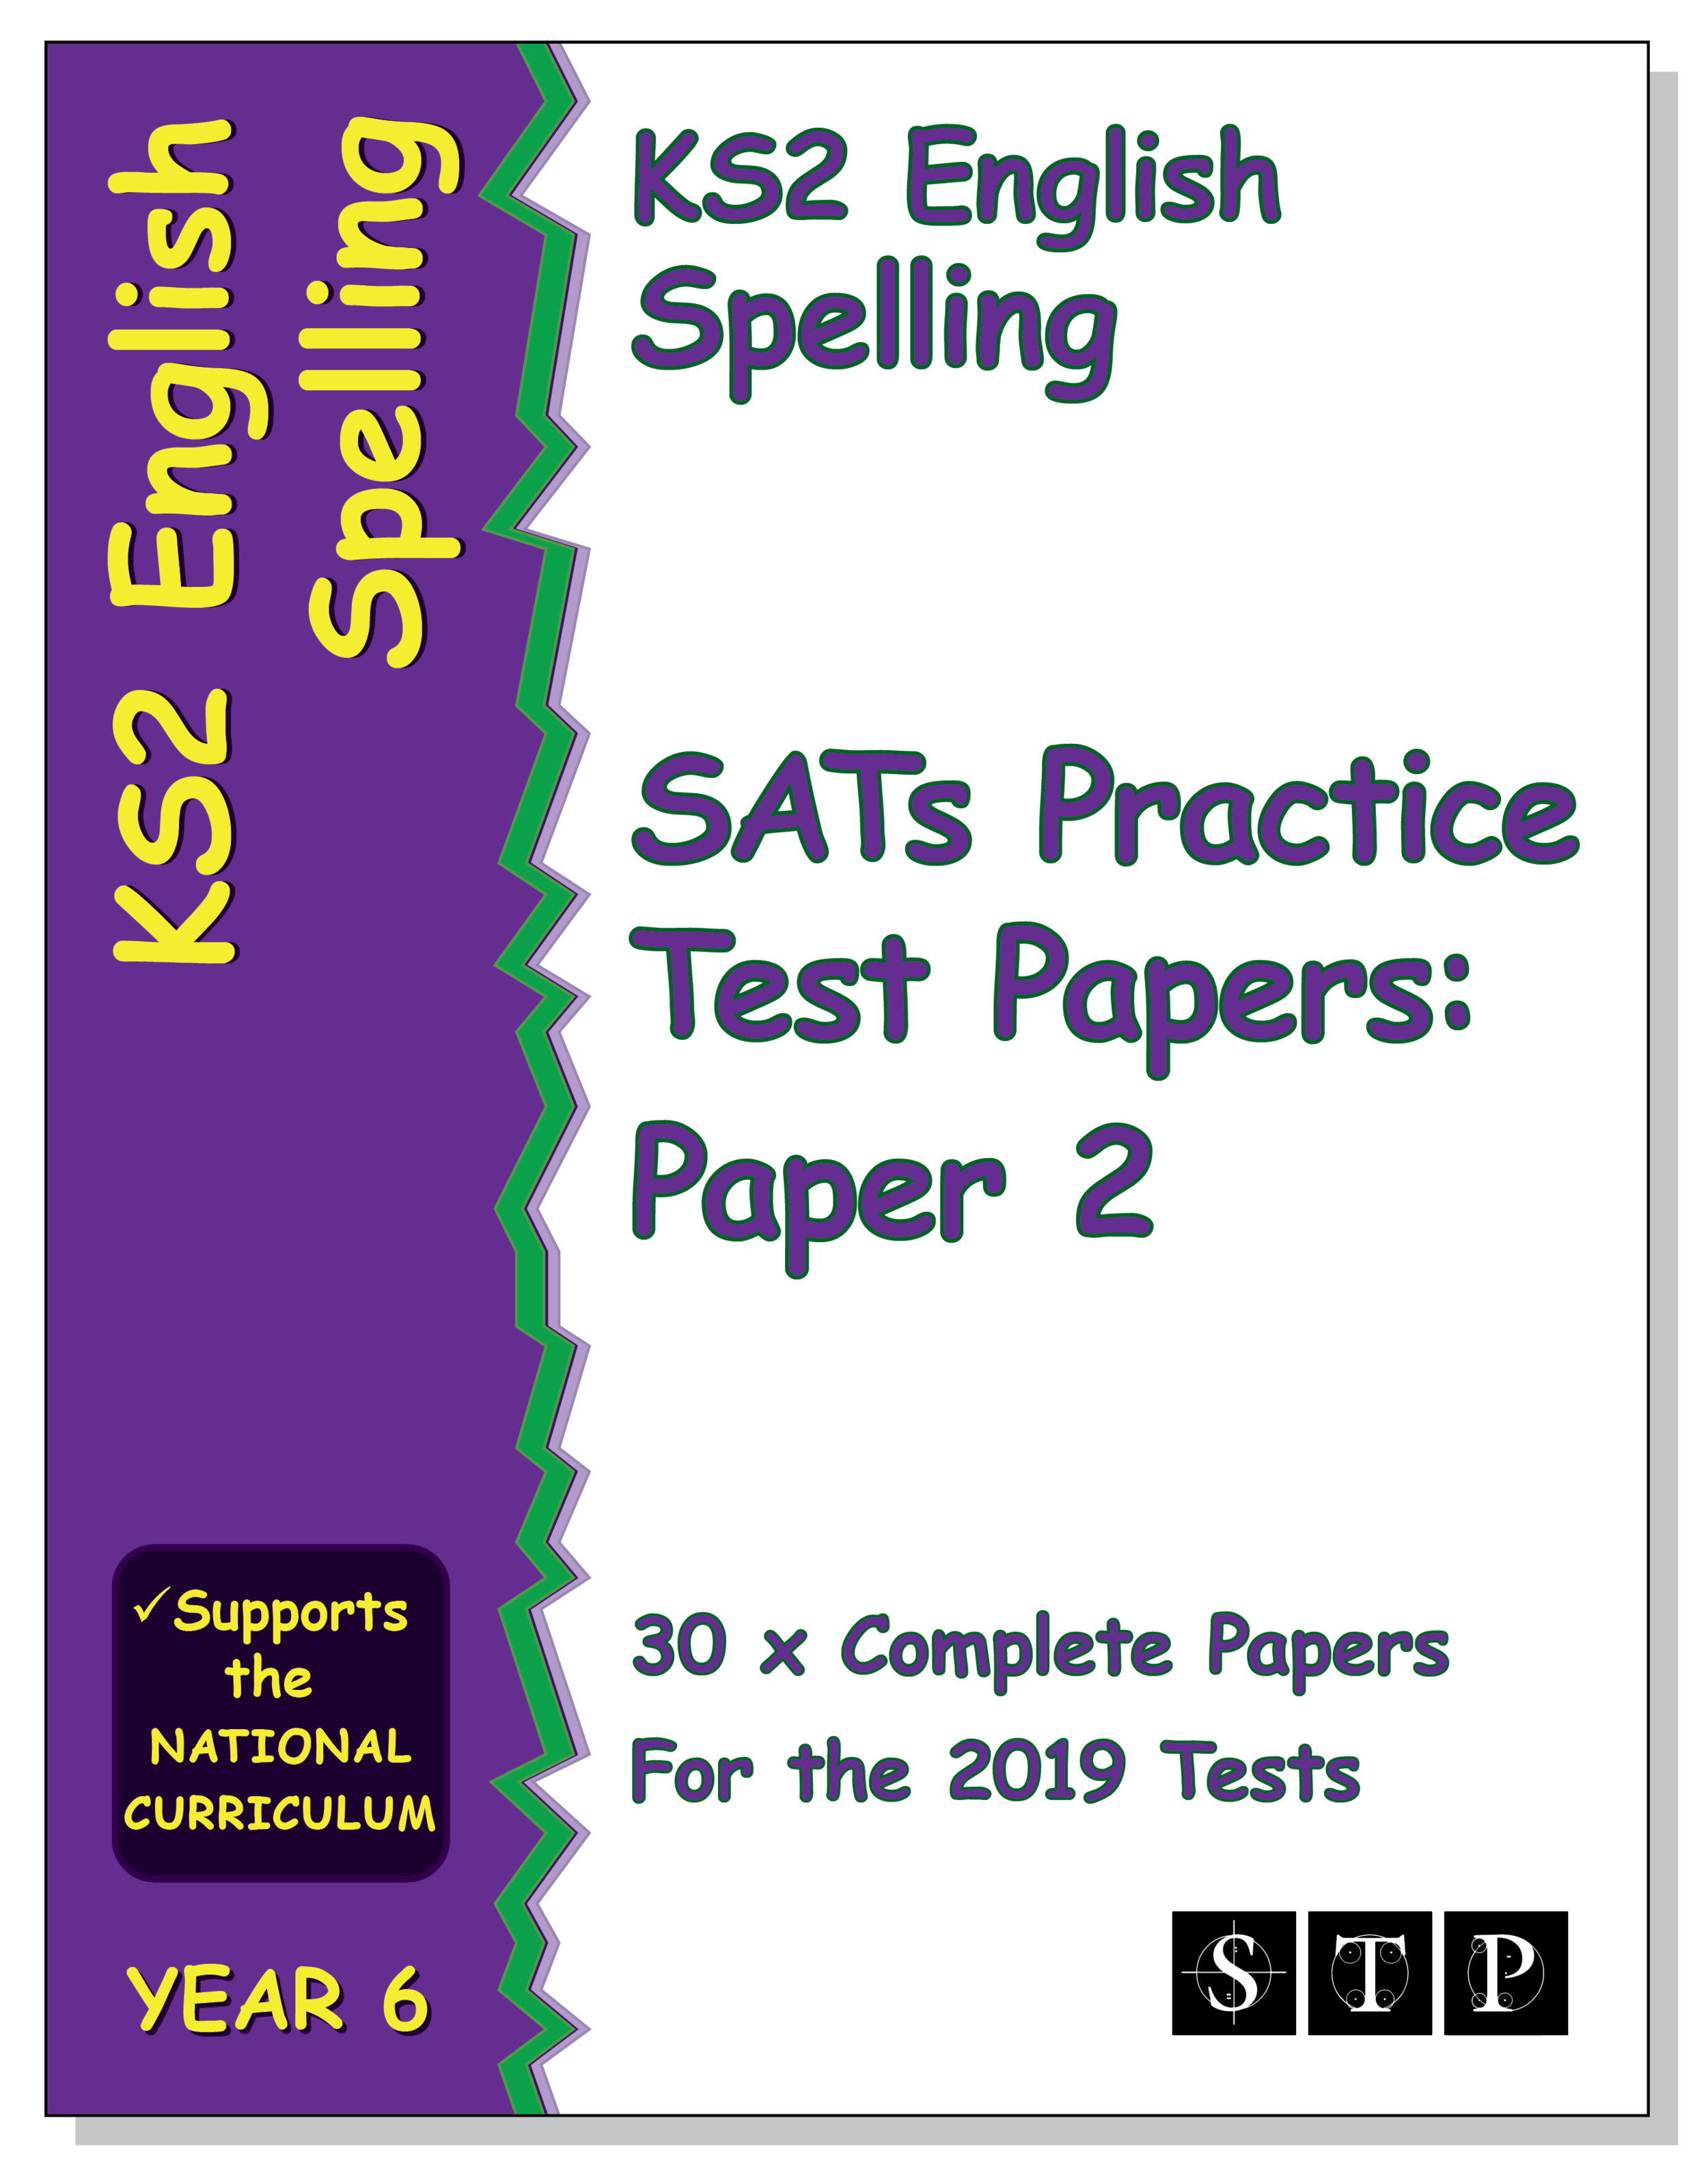 STP Books KS2 English Spelling SATs Practice Test Papers for the 2019 Tests: Paper 2 (Year 6) (STP KS2 English Revision)